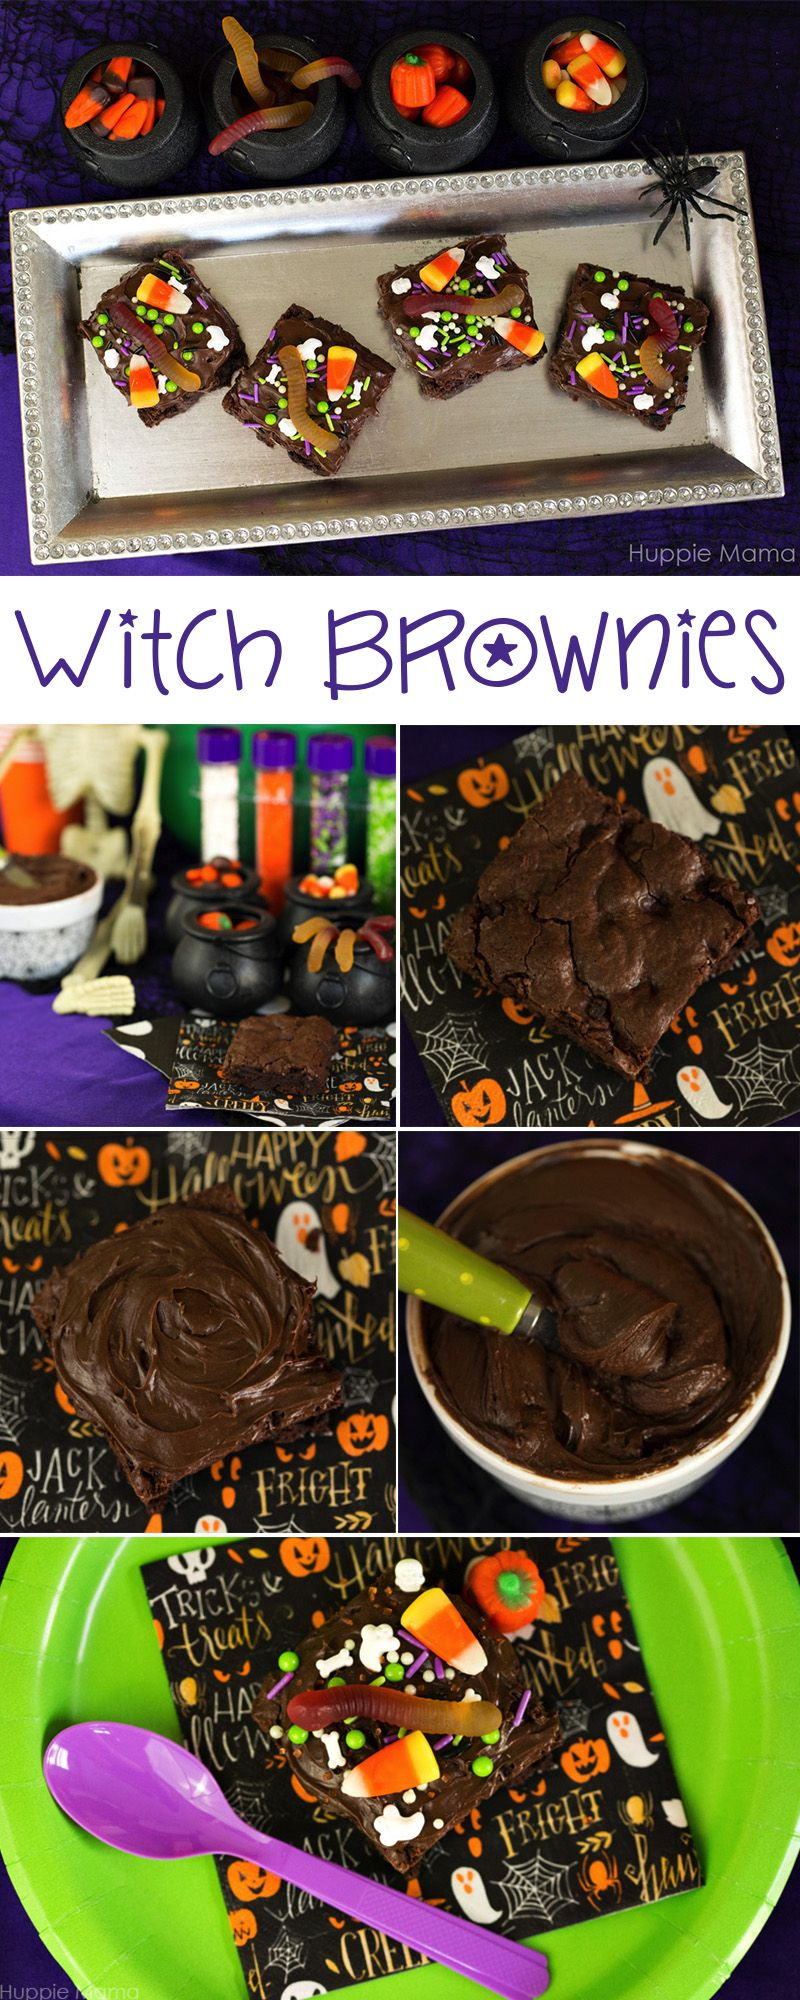 Witch Brownies #WalmartMonsters #MiniMonsters #Walmart AD